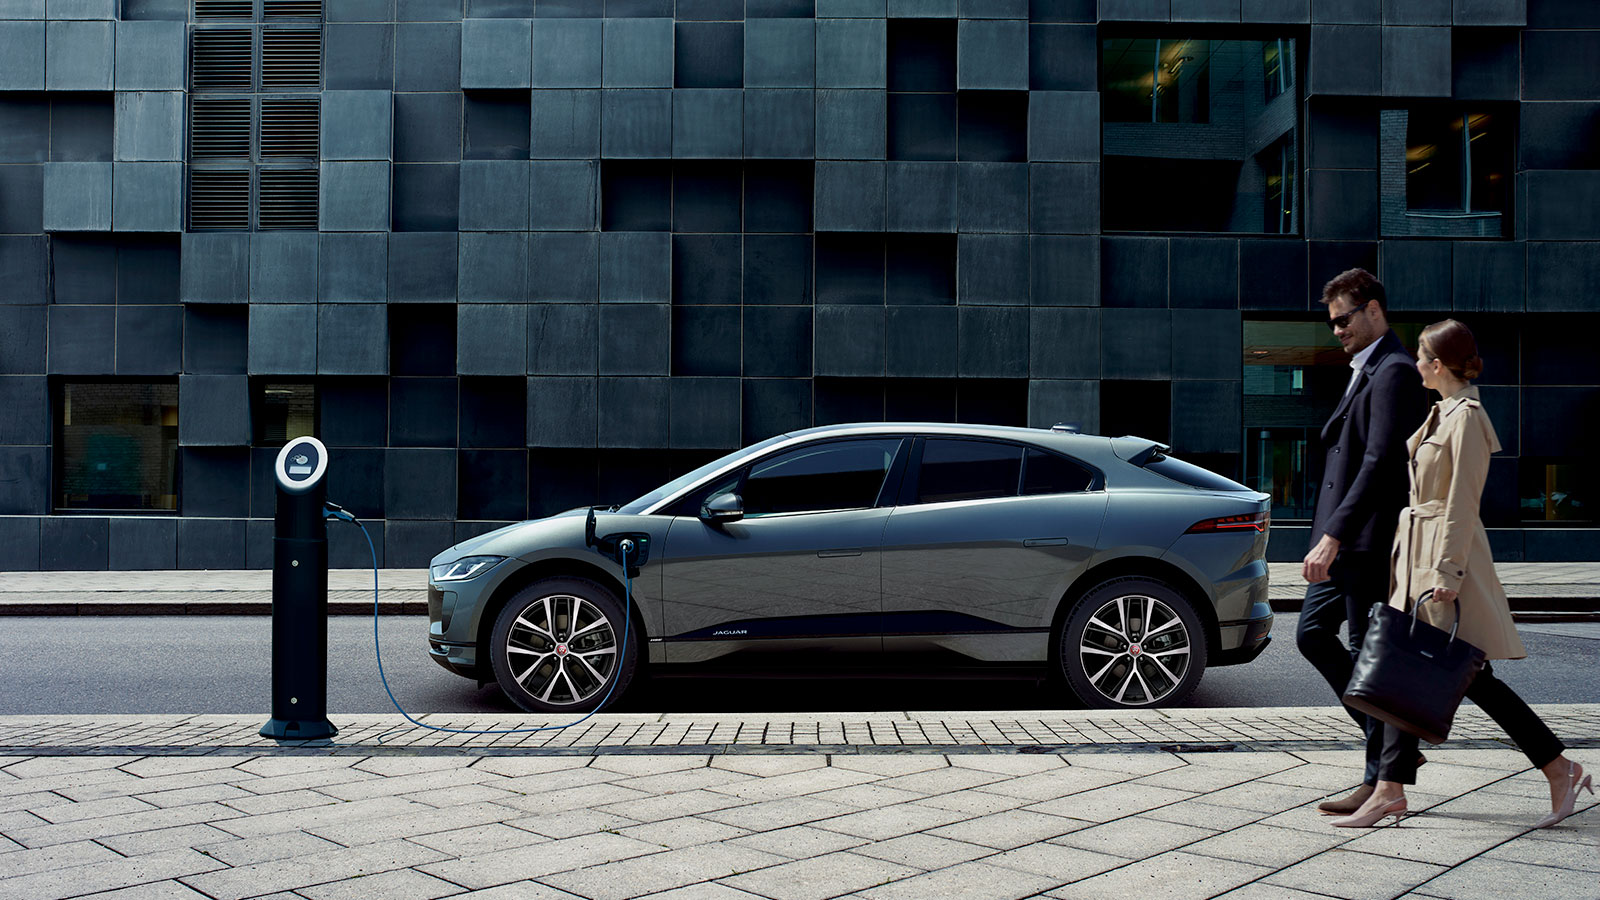 Jaguar I-PACE in a city environment, with a charging point and a couple walking by.